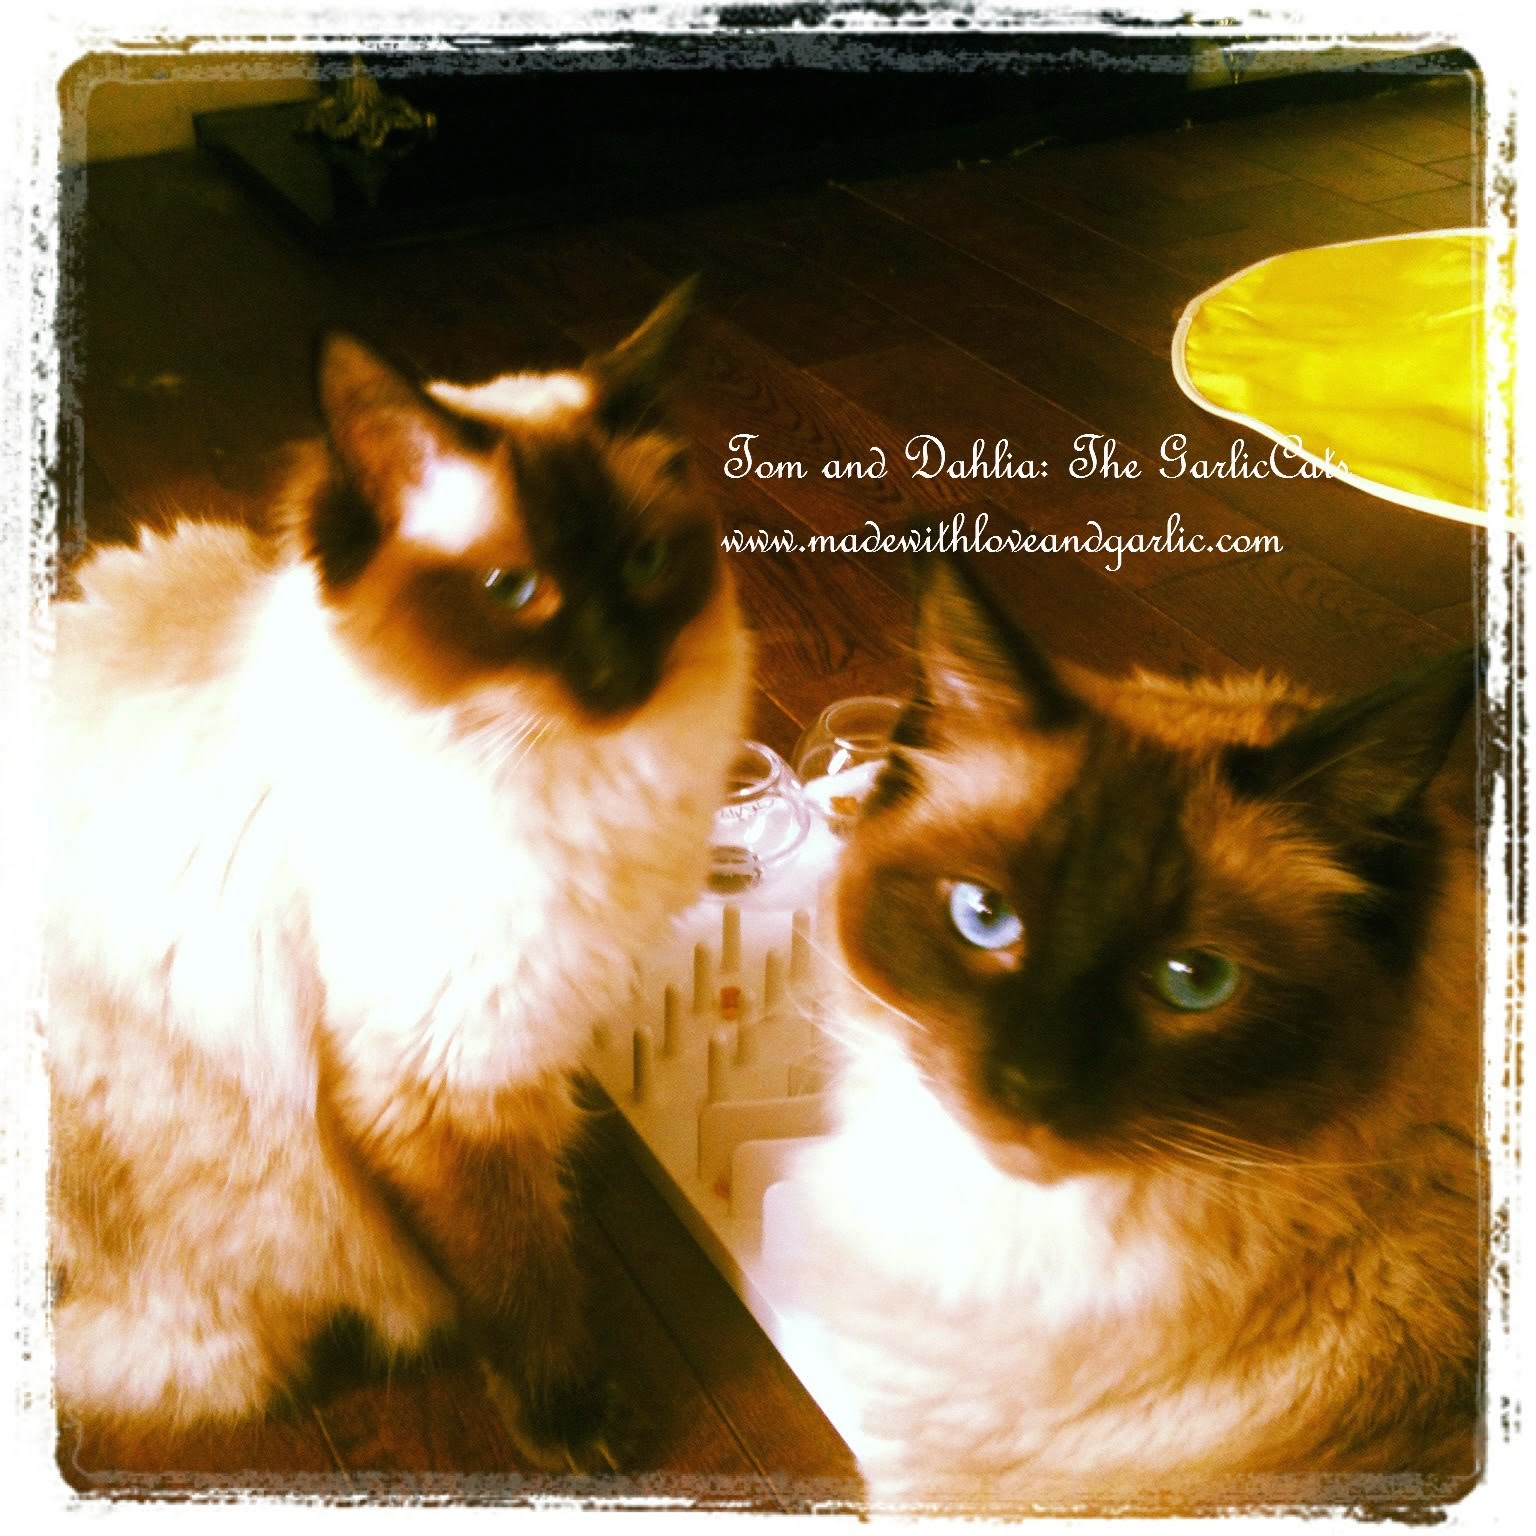 The GarlicCats: Tom and Dahlia